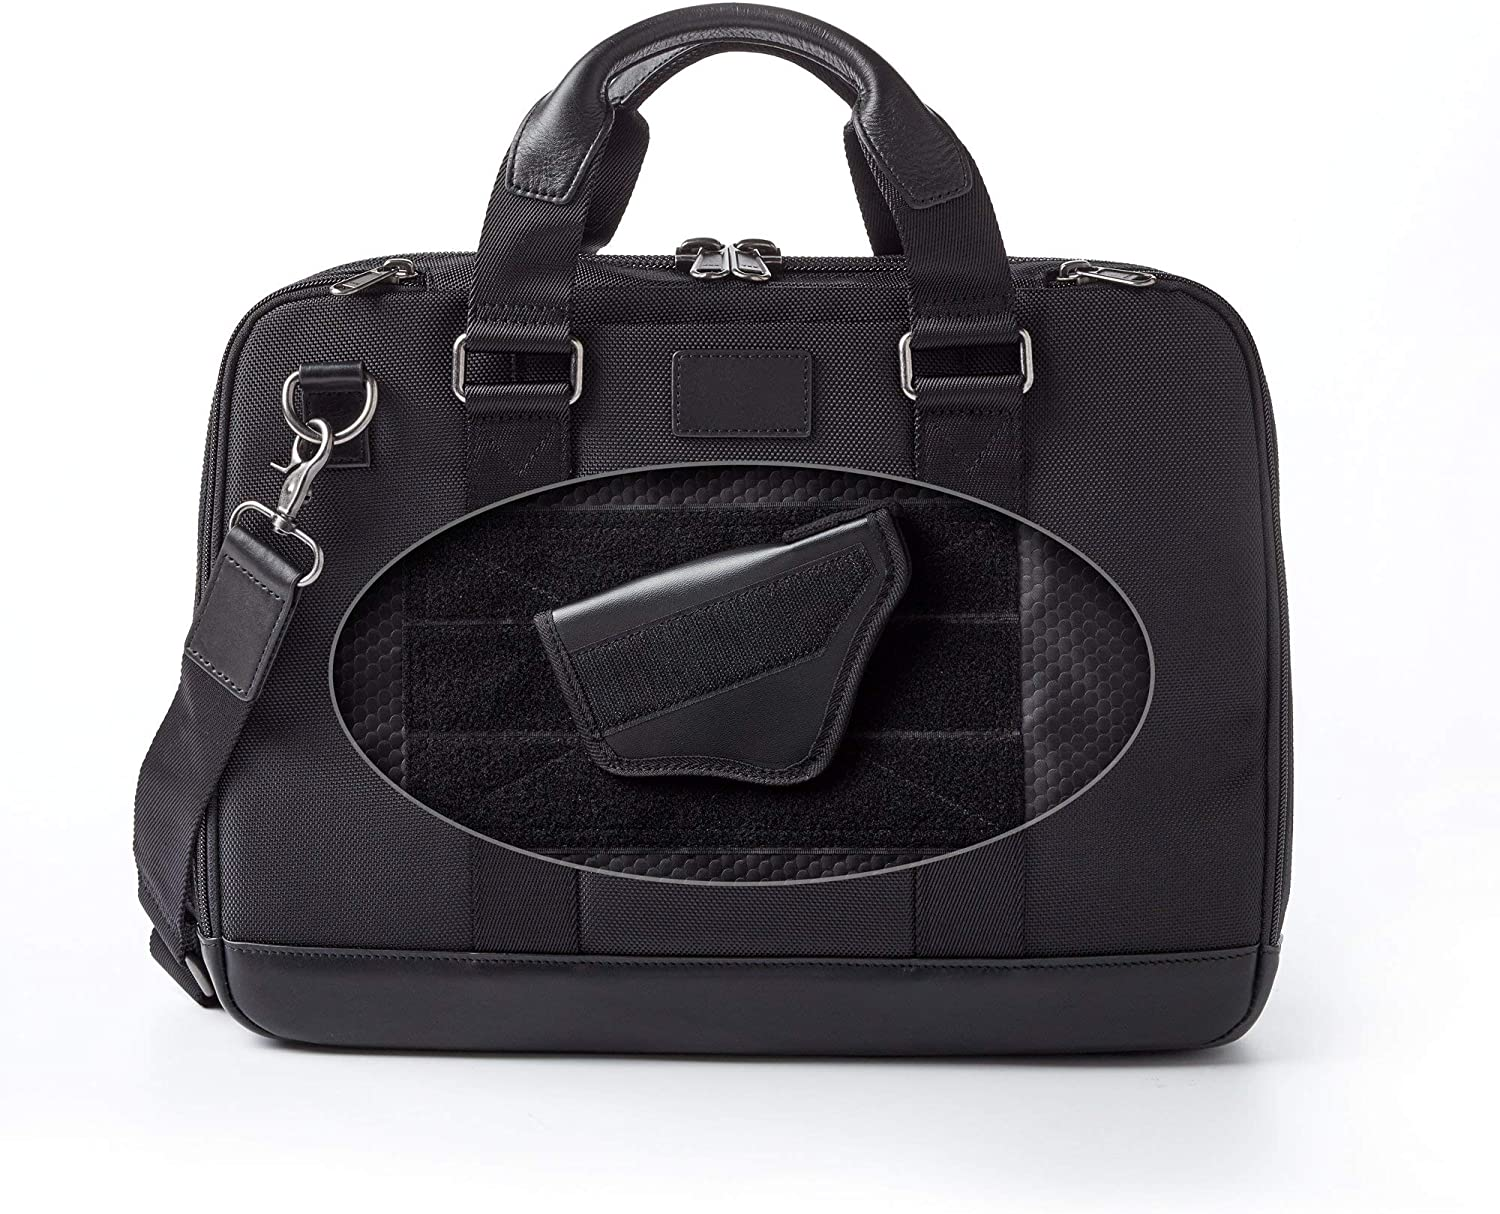 Dalys1895 Concealed Carry Briefcase Travel Bag Laptop Bag, Leather and 1680 Ballistic Nylon